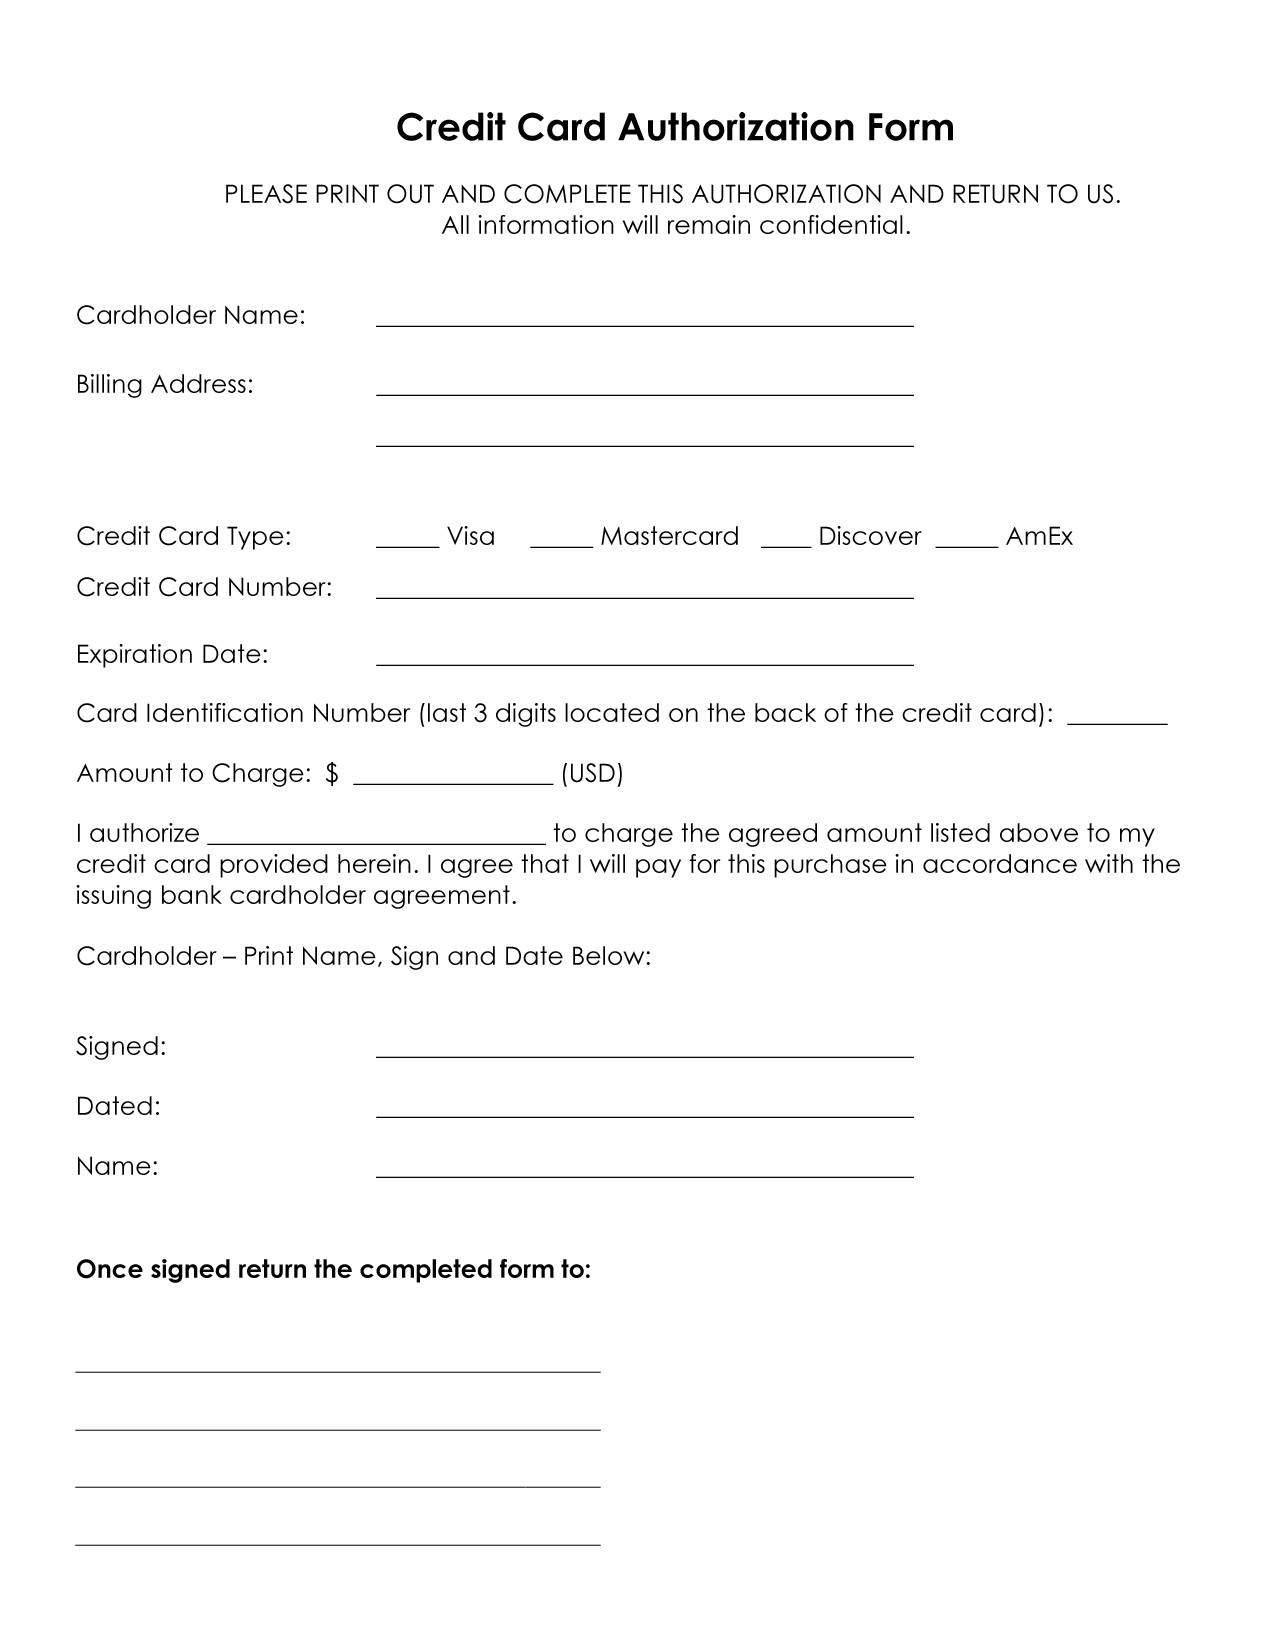 Credit card authorization forms from Service Related. Generic